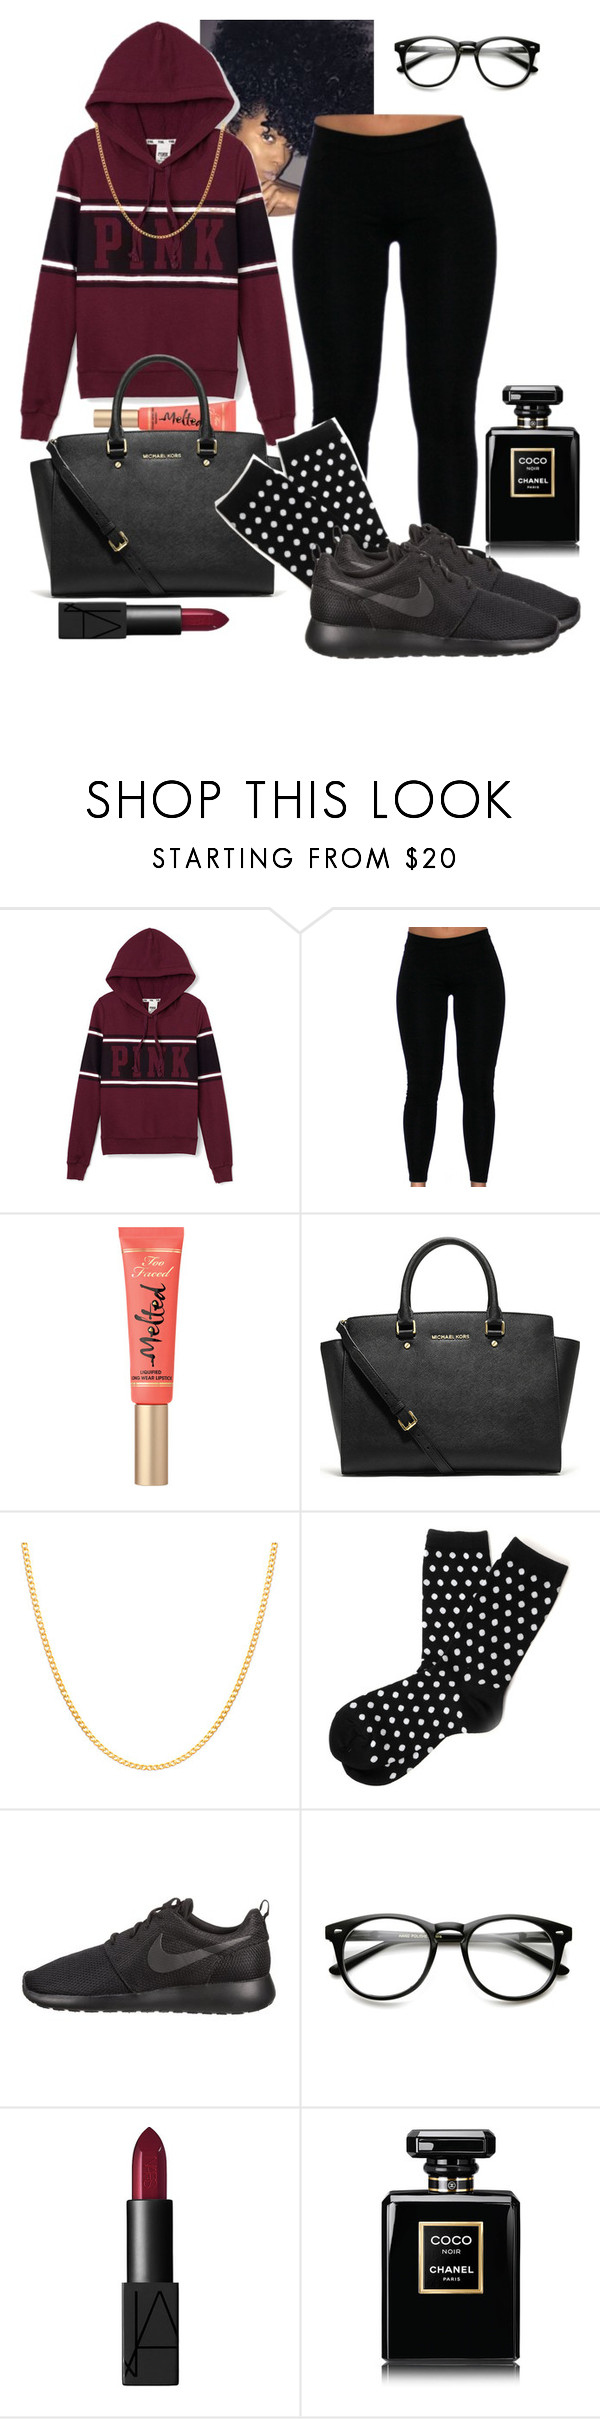 """""""Untitled #140"""" by classycam ❤ liked on Polyvore featuring Victoria's Secret PINK, Too Faced Cosmetics, Michael Kors, Sterling Essentials, Hansel from Basel, NIKE, NARS Cosmetics and Chanel"""